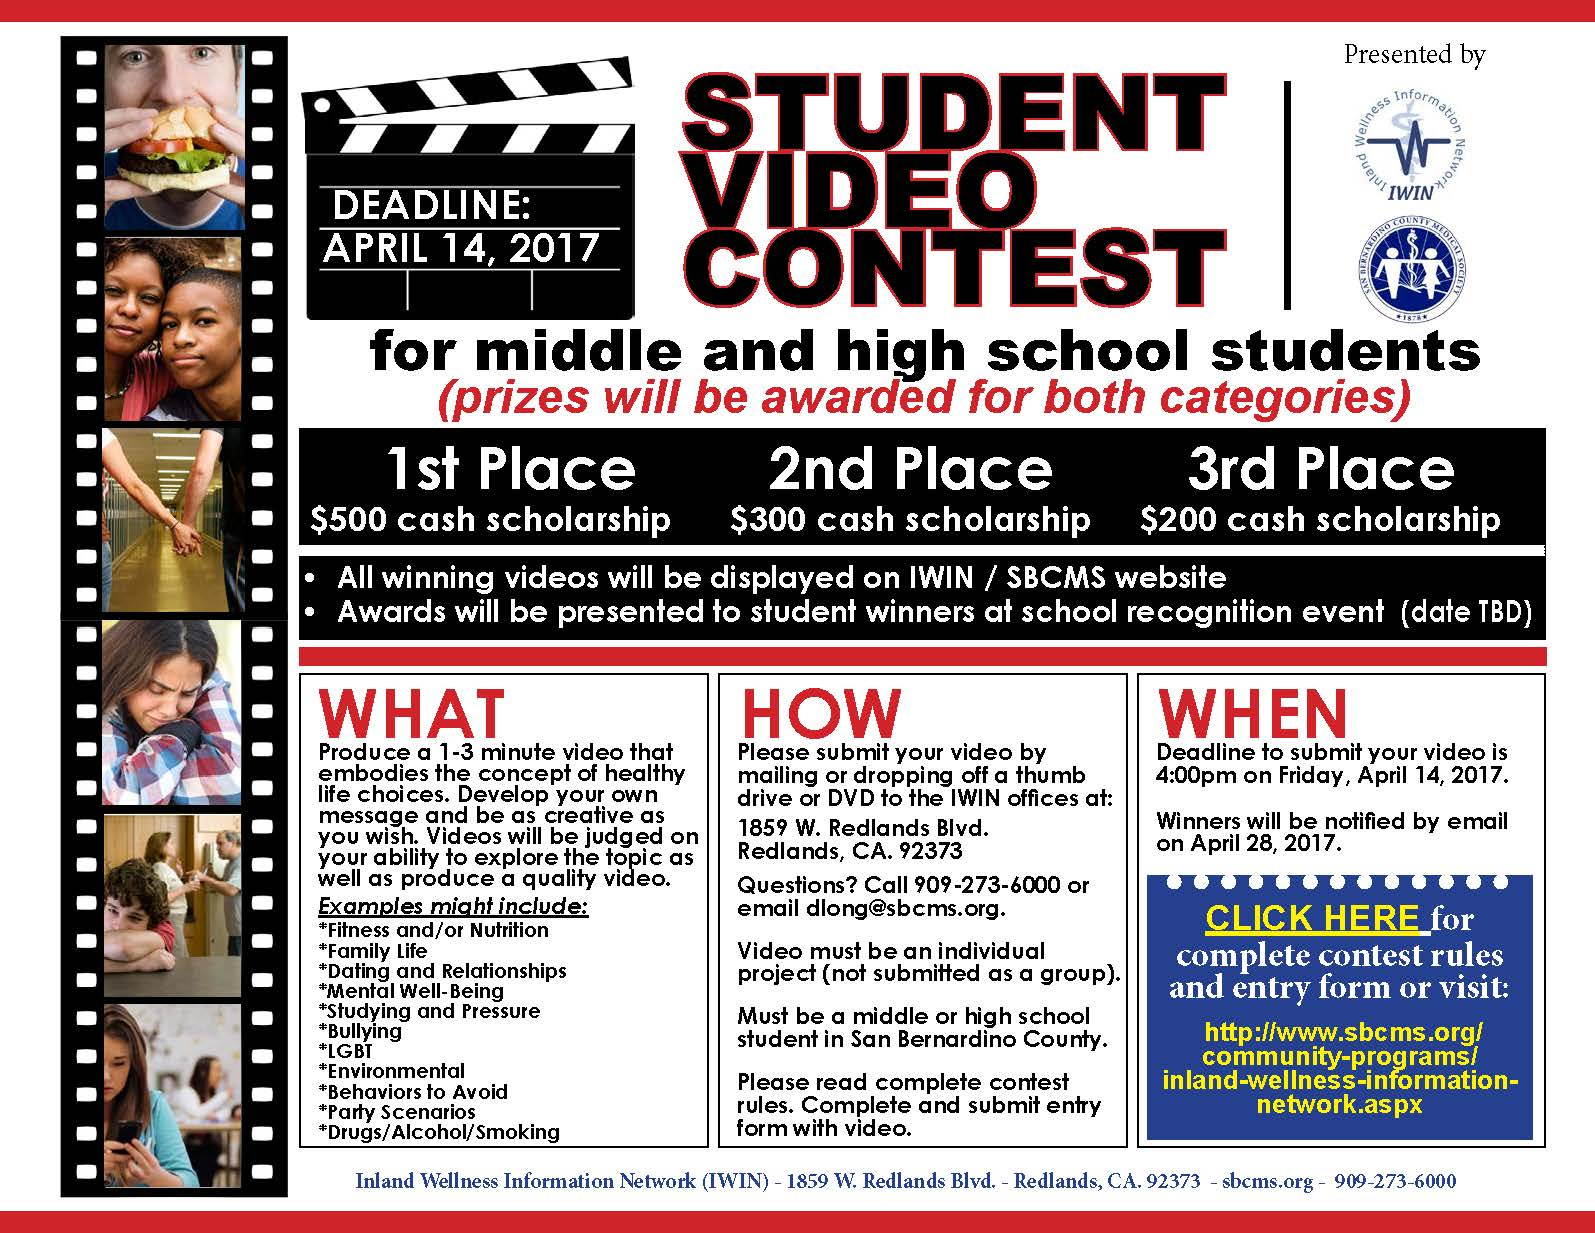 015 Essay Contest Middle School Action Research Student Voice Evaluates High Communication International Writing Competitions For Students Contests April Schoolers Breathtaking Competition Creative Curriculum Online Full